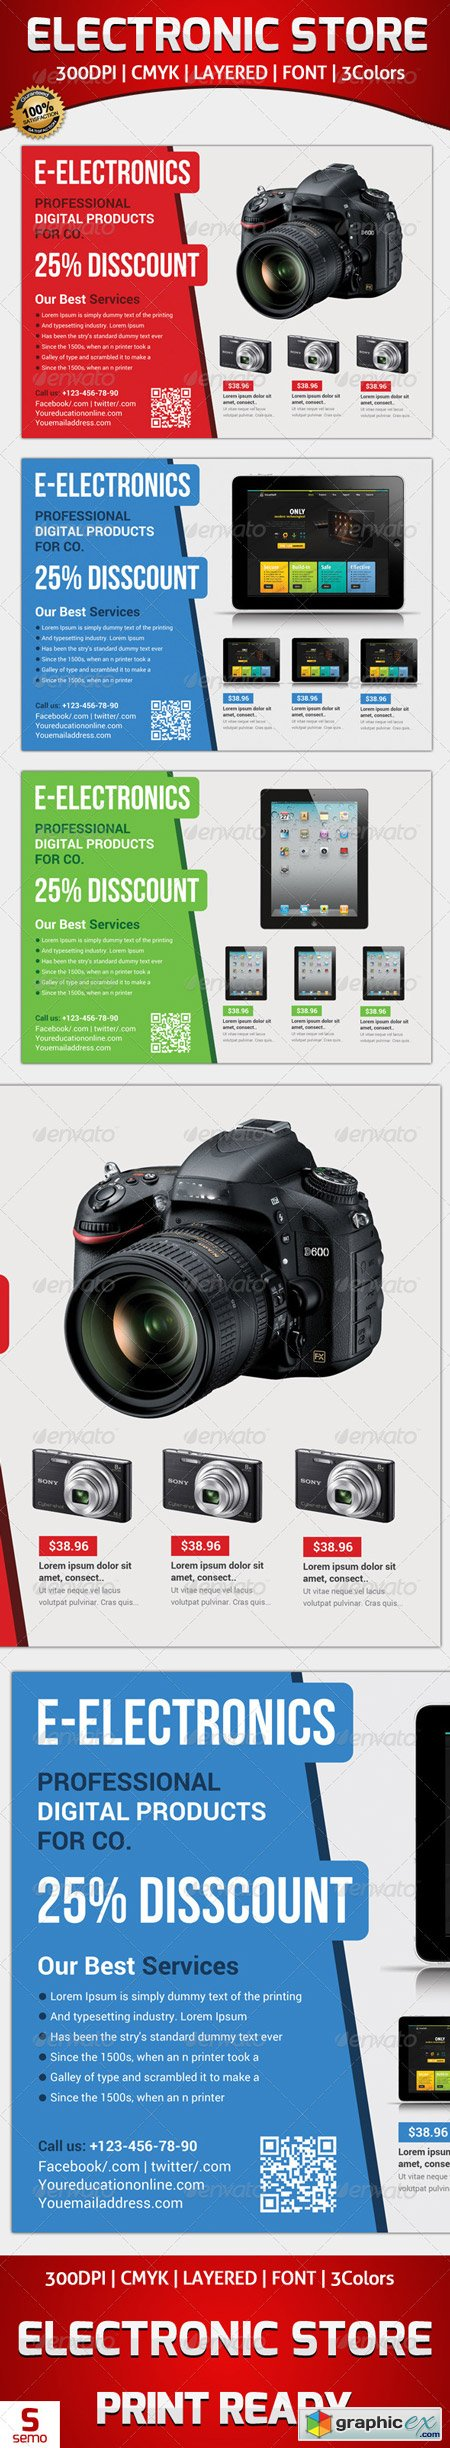 Electronic Store Flyer Template